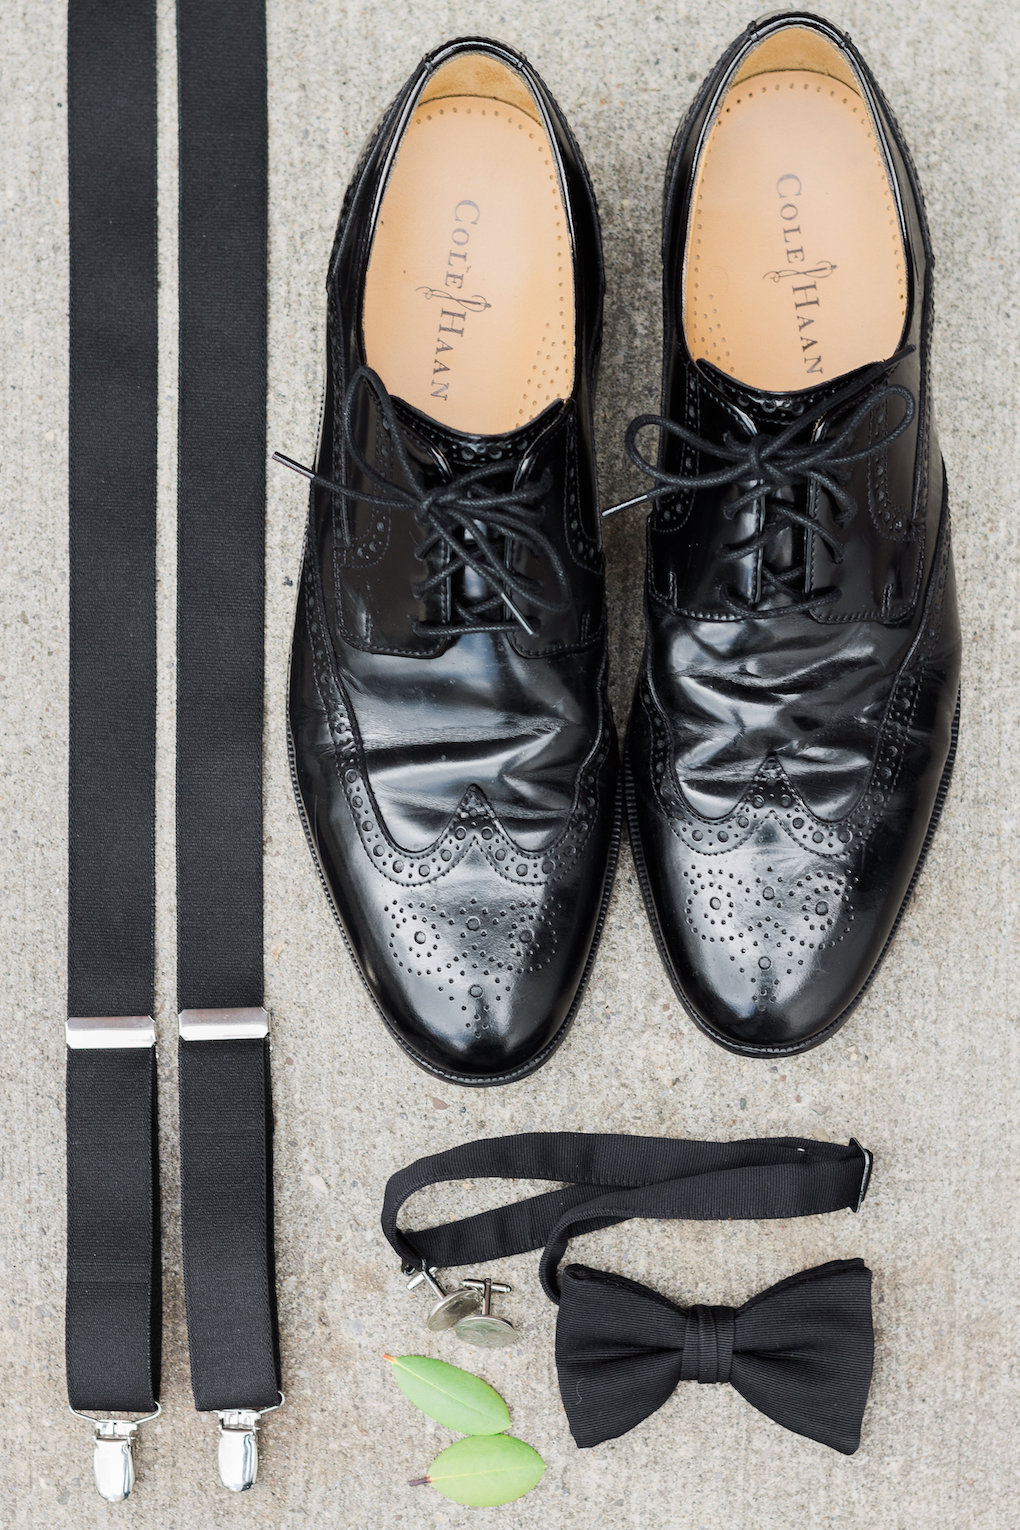 Grooms accessories for chic wedding in Buffalo, NY planned by Exhale Events. Find more timeless wedding inspiration at exhale-events.com!